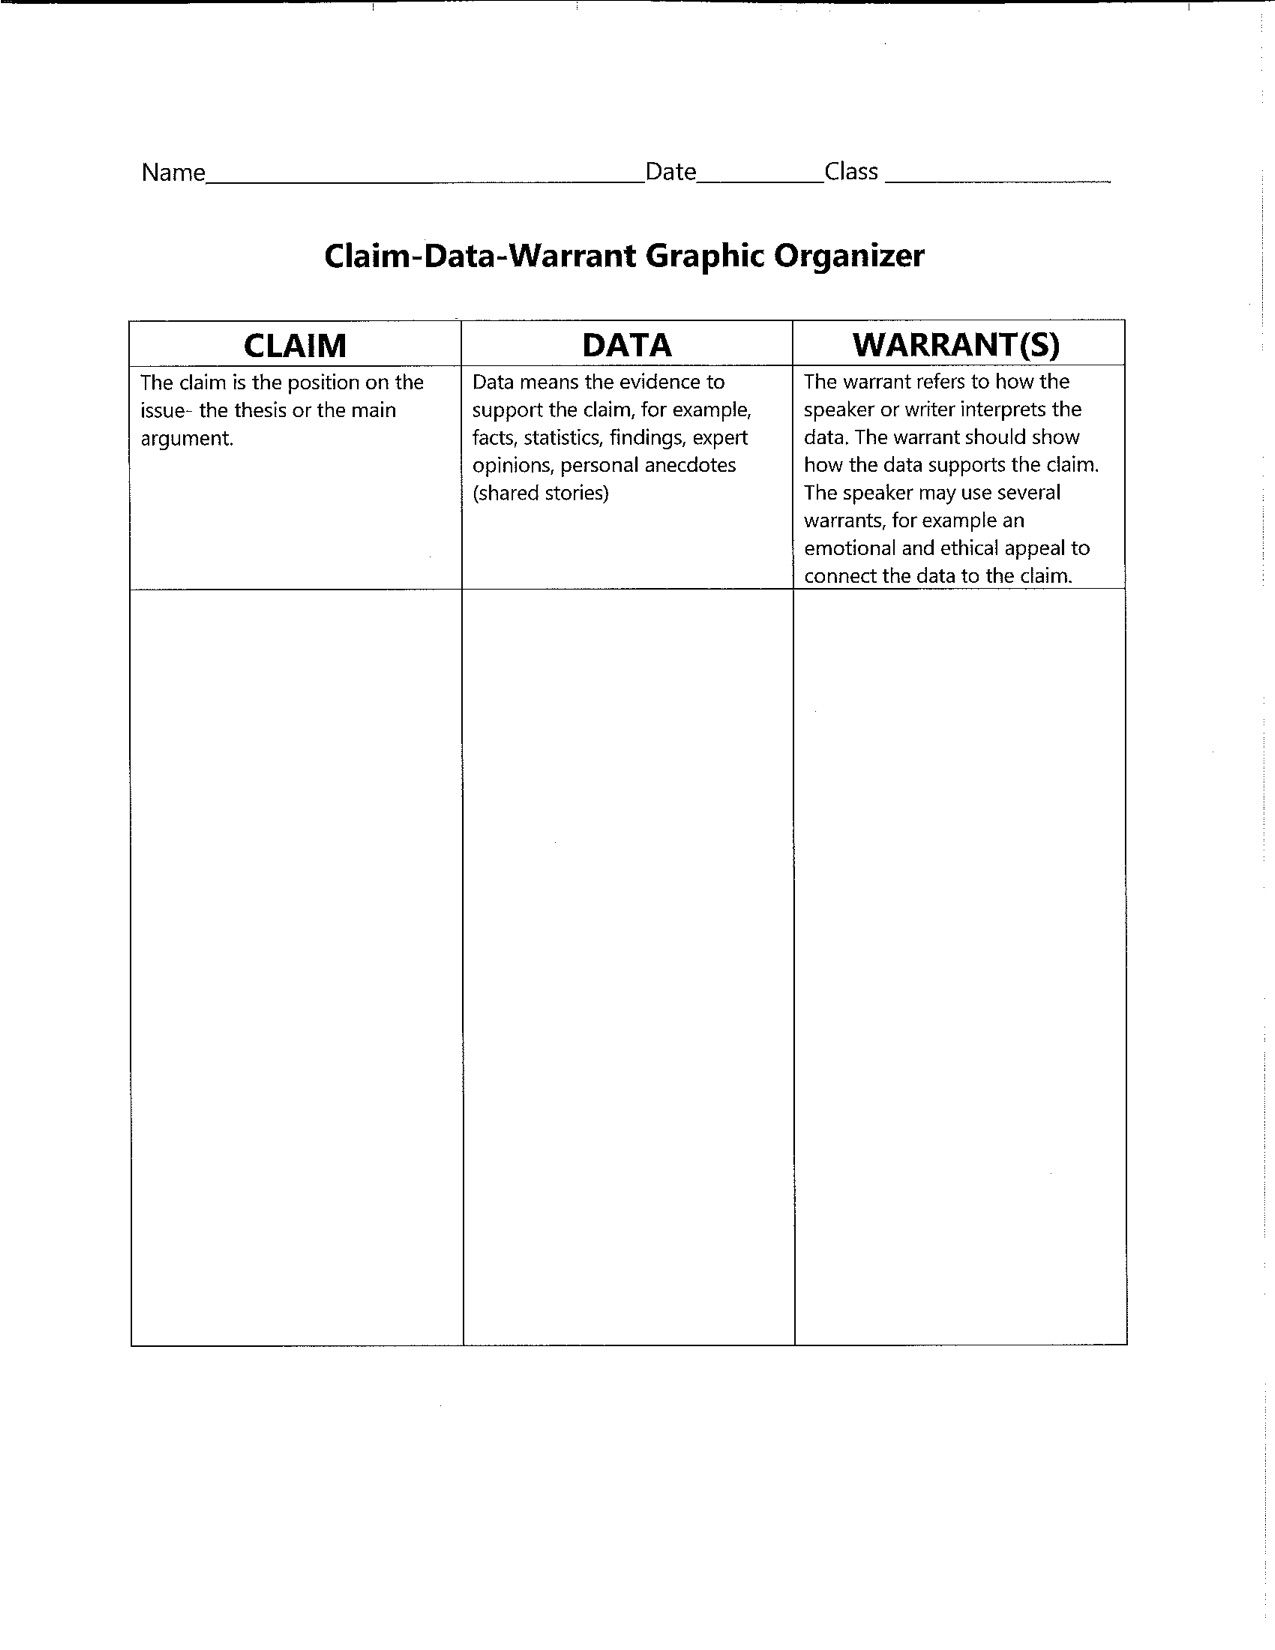 Claim Data Warrant Graphic Organizer